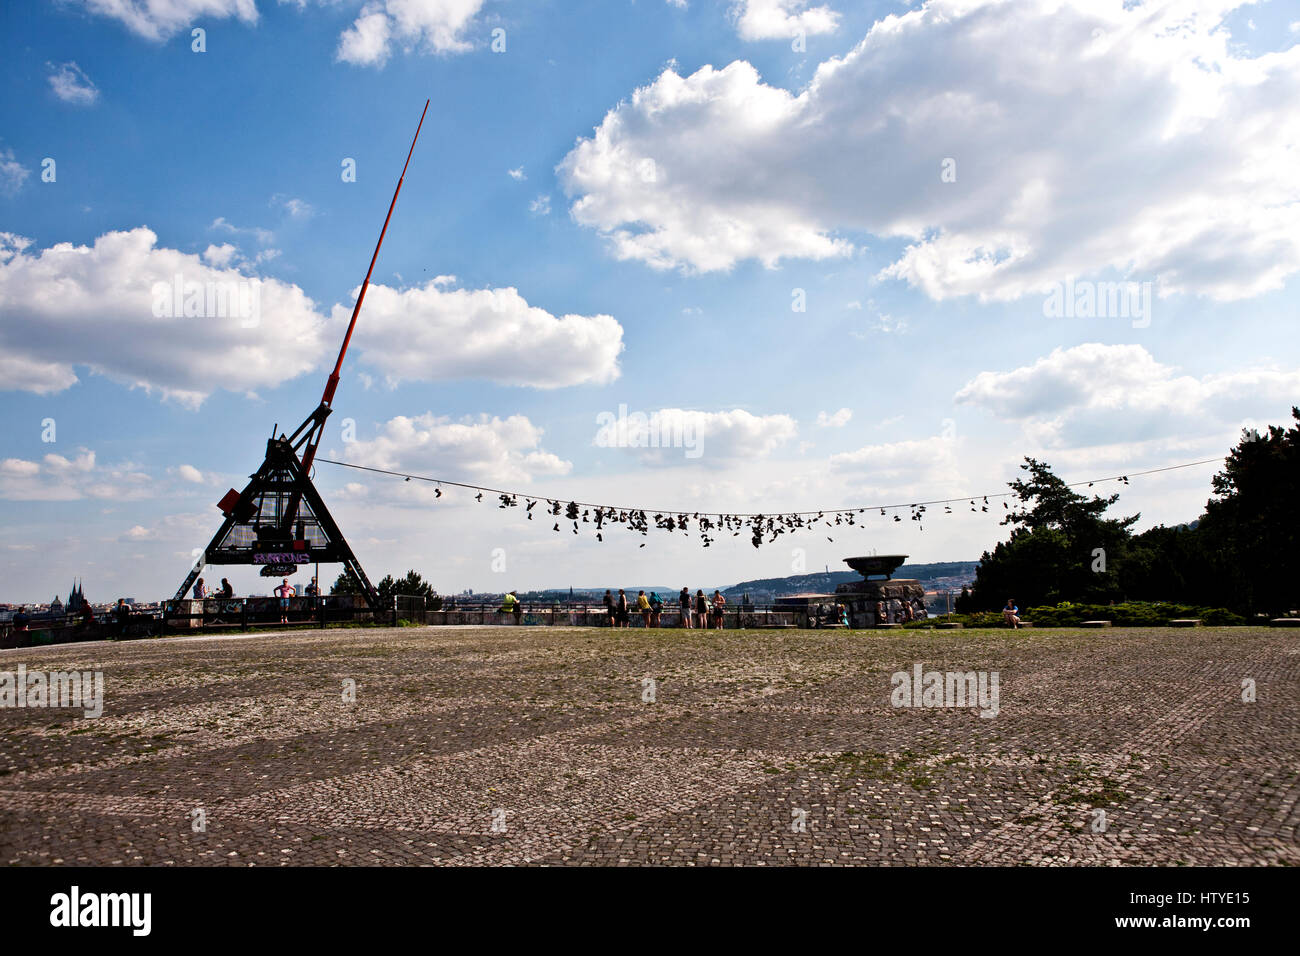 Prague Metronome in the Letna Park and was designed by Vratislav Novak, Czech Republic. - Stock Image